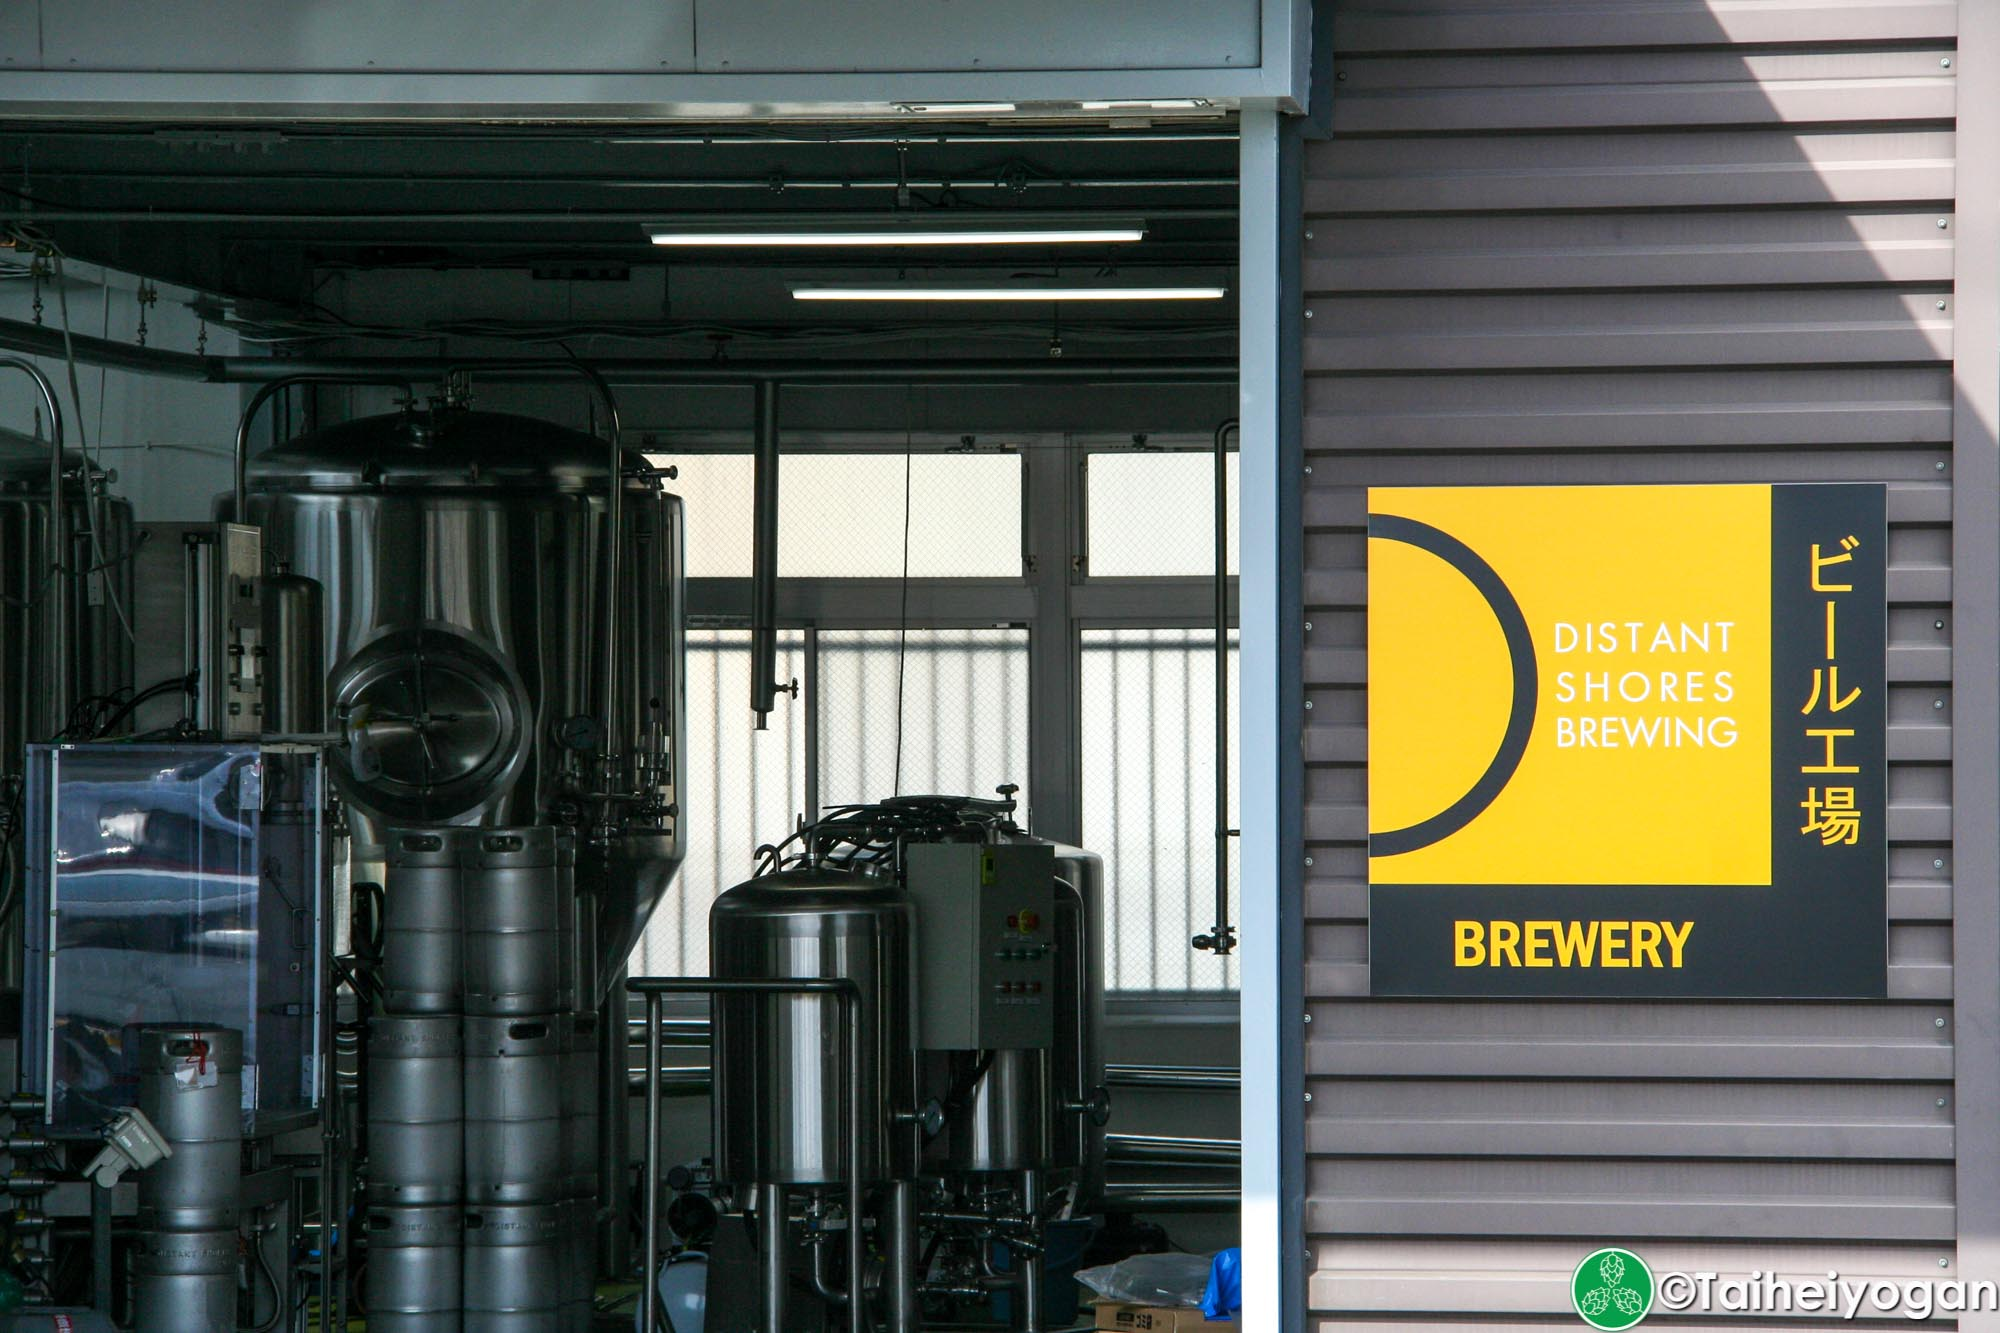 Distant Shores Brewery - Brewery